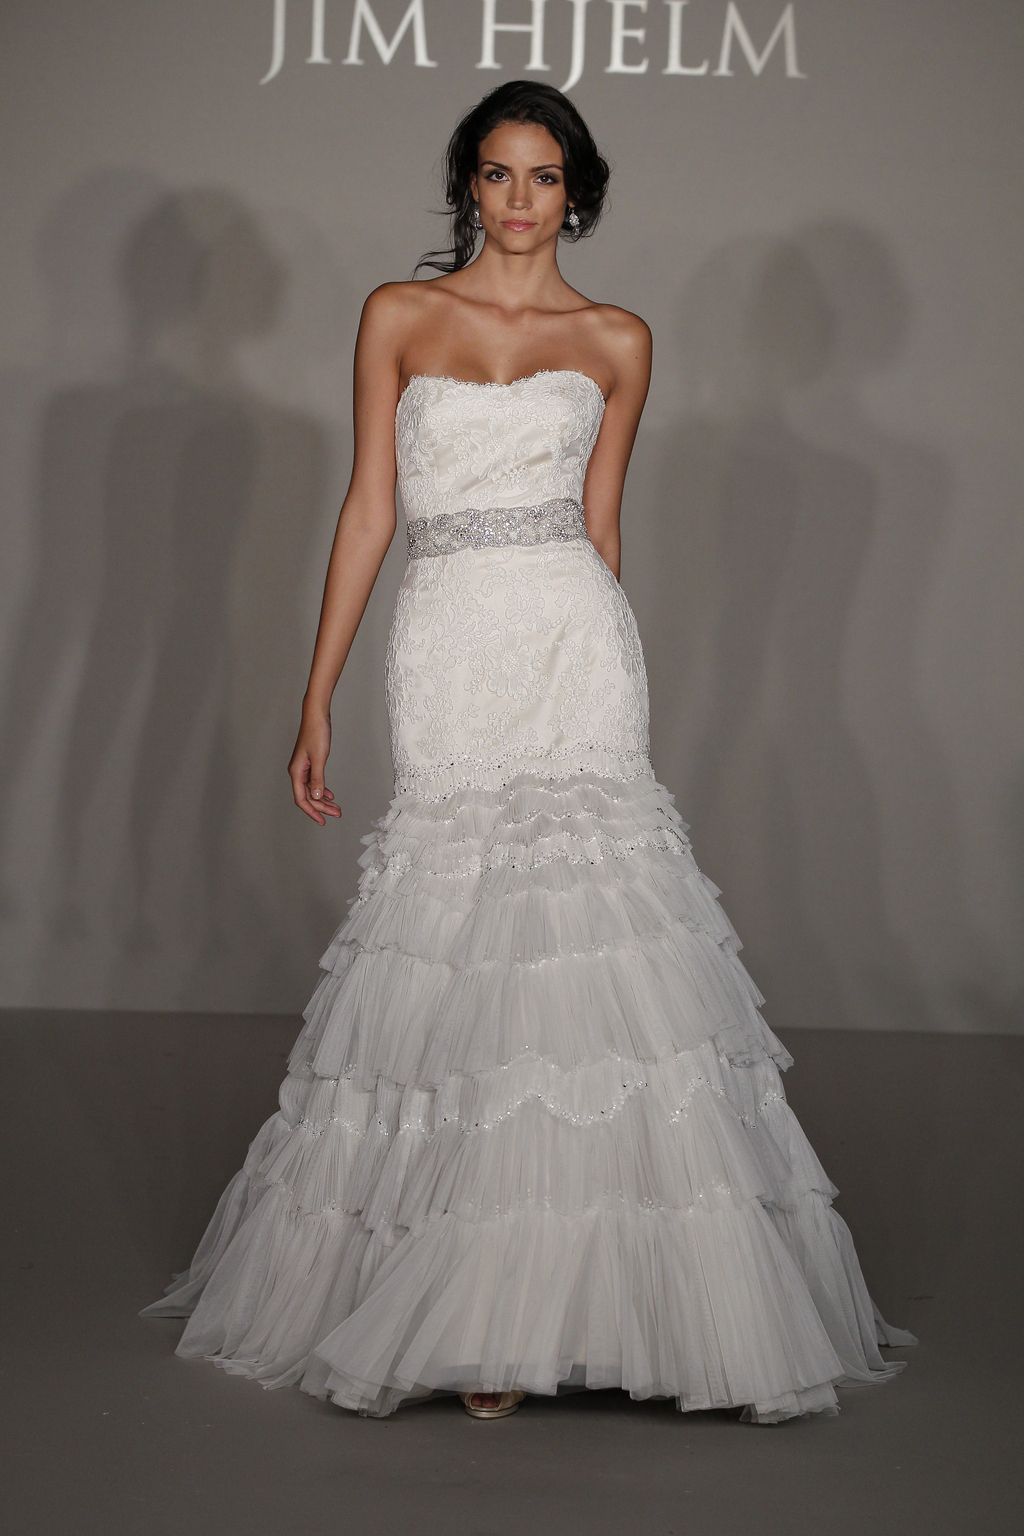 Jim-hjelm-wedding-dress-spring-2012-bridal-gowns-8218.full